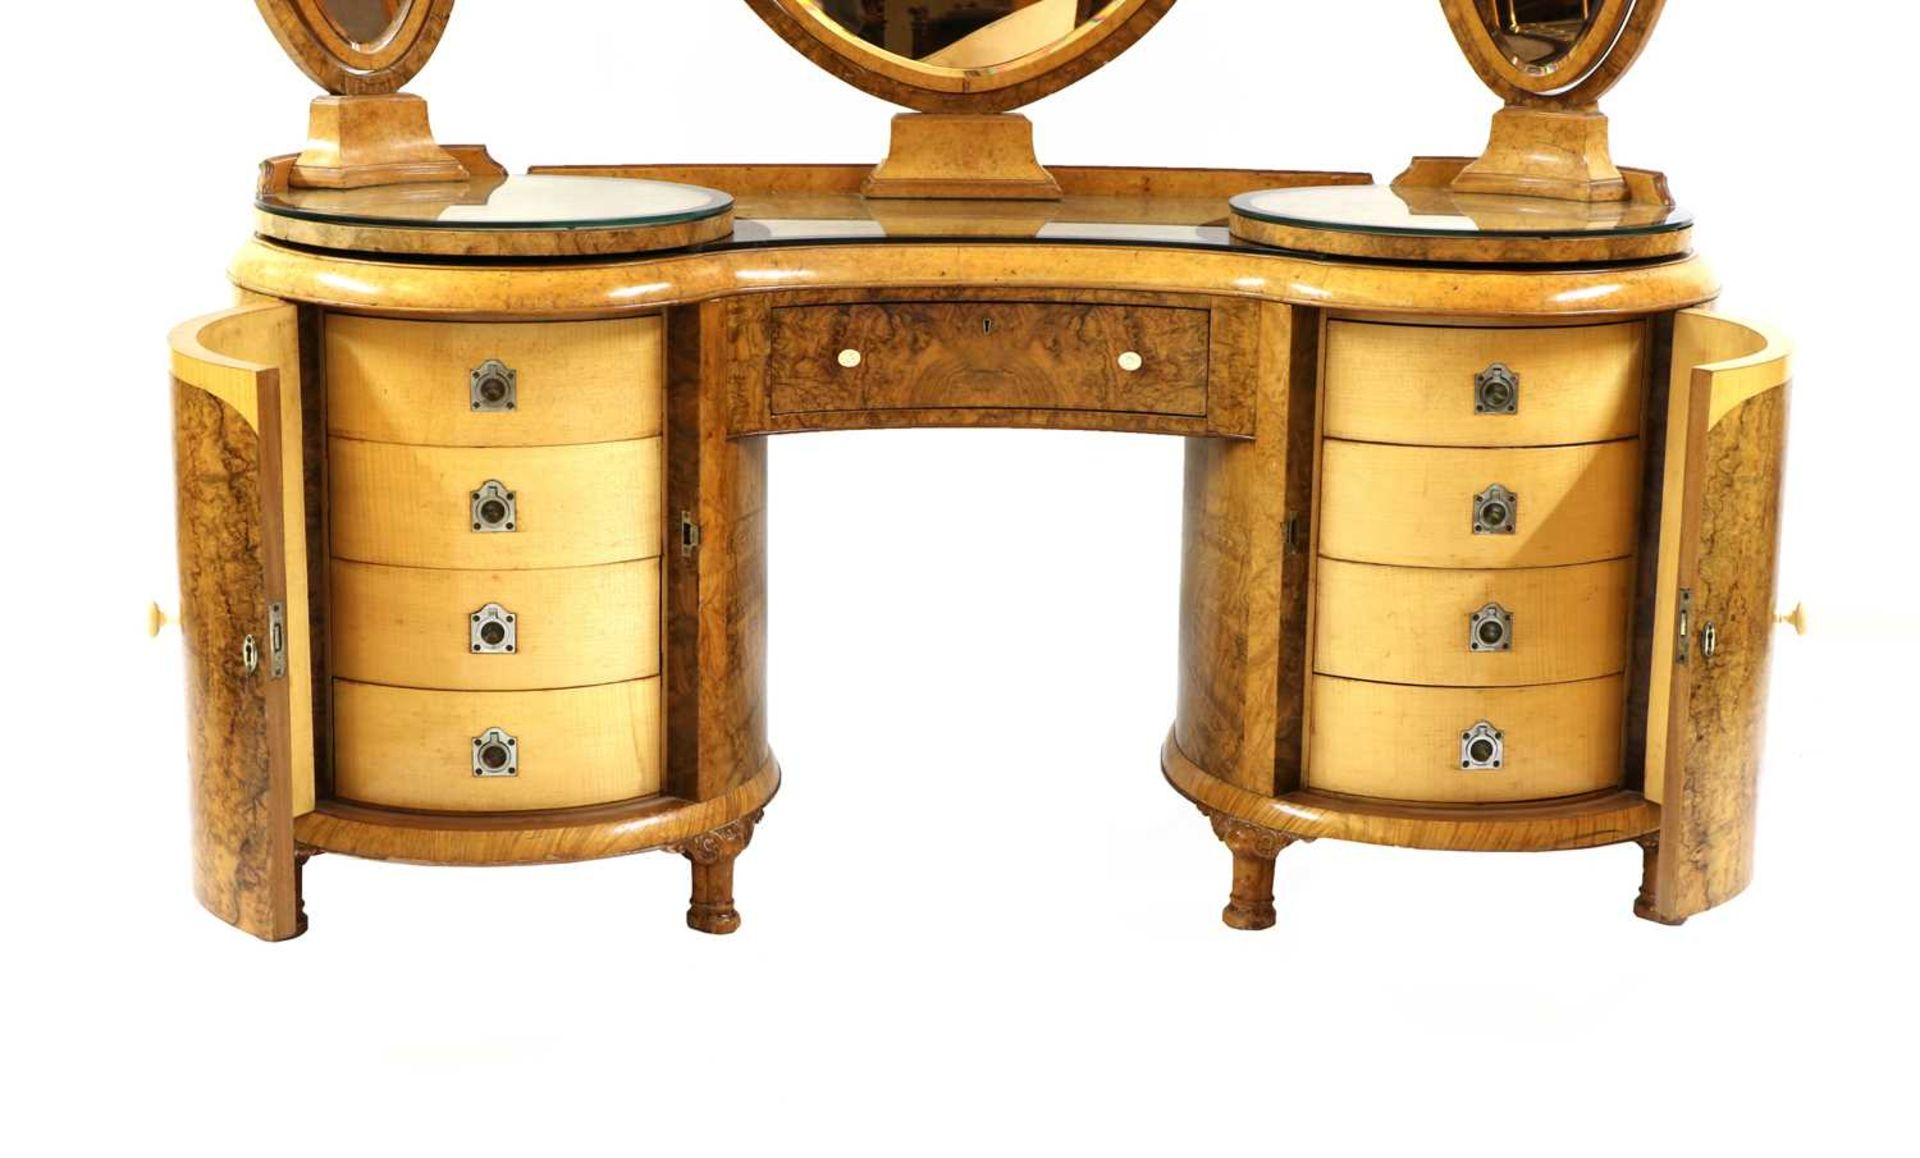 An Art Deco burr walnut and maple bedroom suite, - Image 20 of 45